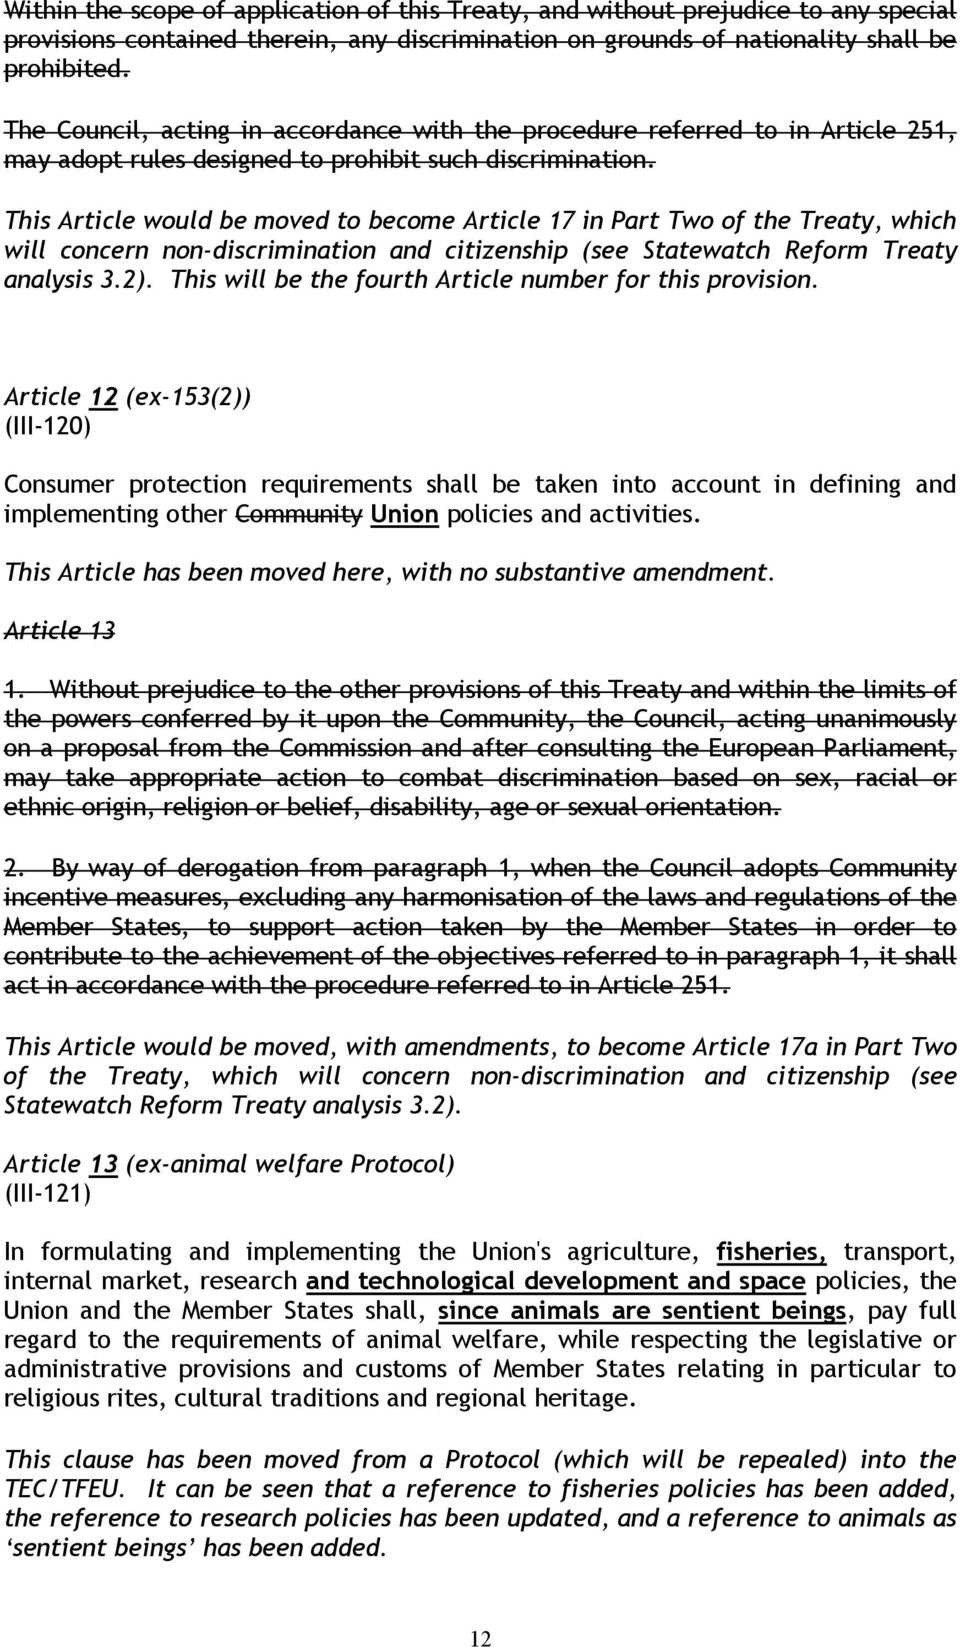 This Article would be moved to become Article 17 in Part Two of the Treaty, which will concern non-discrimination and citizenship (see Statewatch Reform Treaty analysis 3.2).